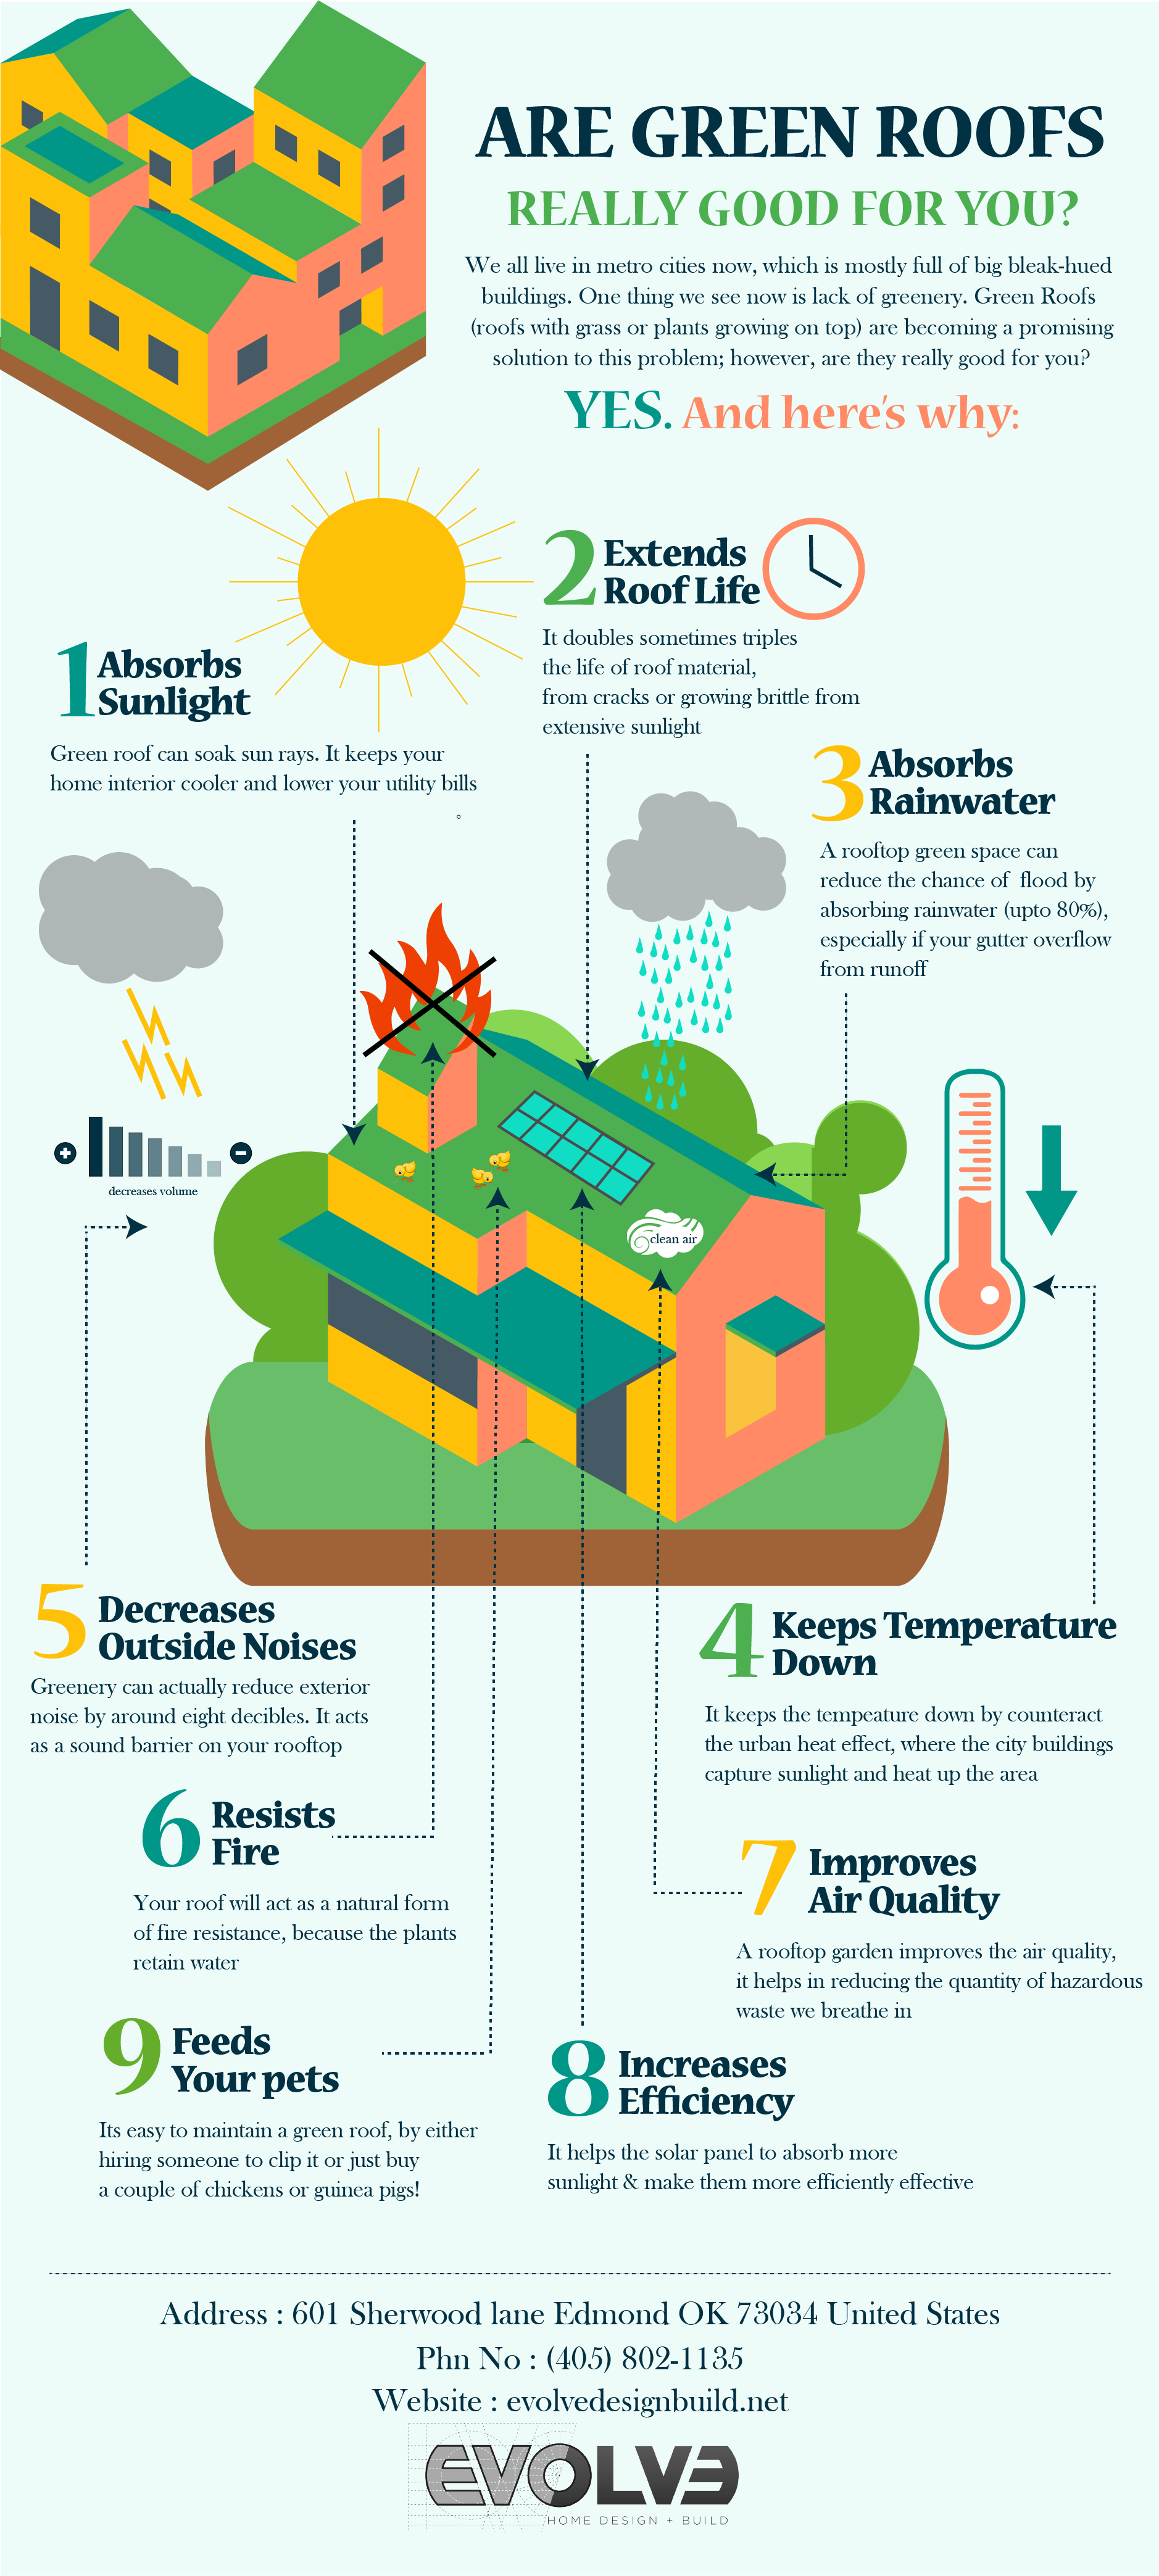 Find Out Why Green Roofs Are A Great Solutions To Many Of Life S Problems From Mood Boosting To Cost Saving Here Are The In 2020 Green Roof Benefits Green Roof Roof